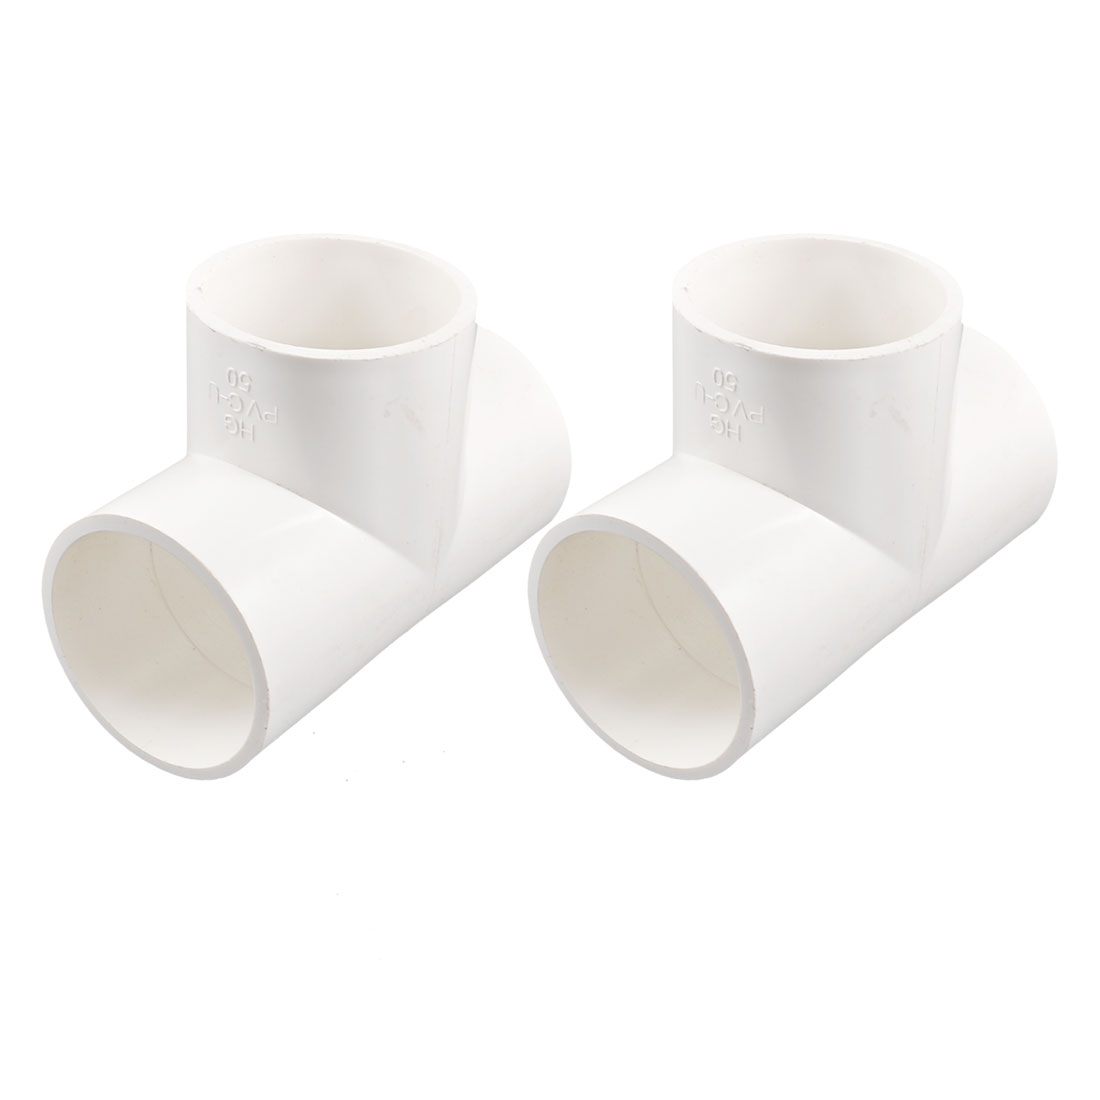 2 Pcs White 3 Way Water Hose Fitting Coupler Connectors 50mm